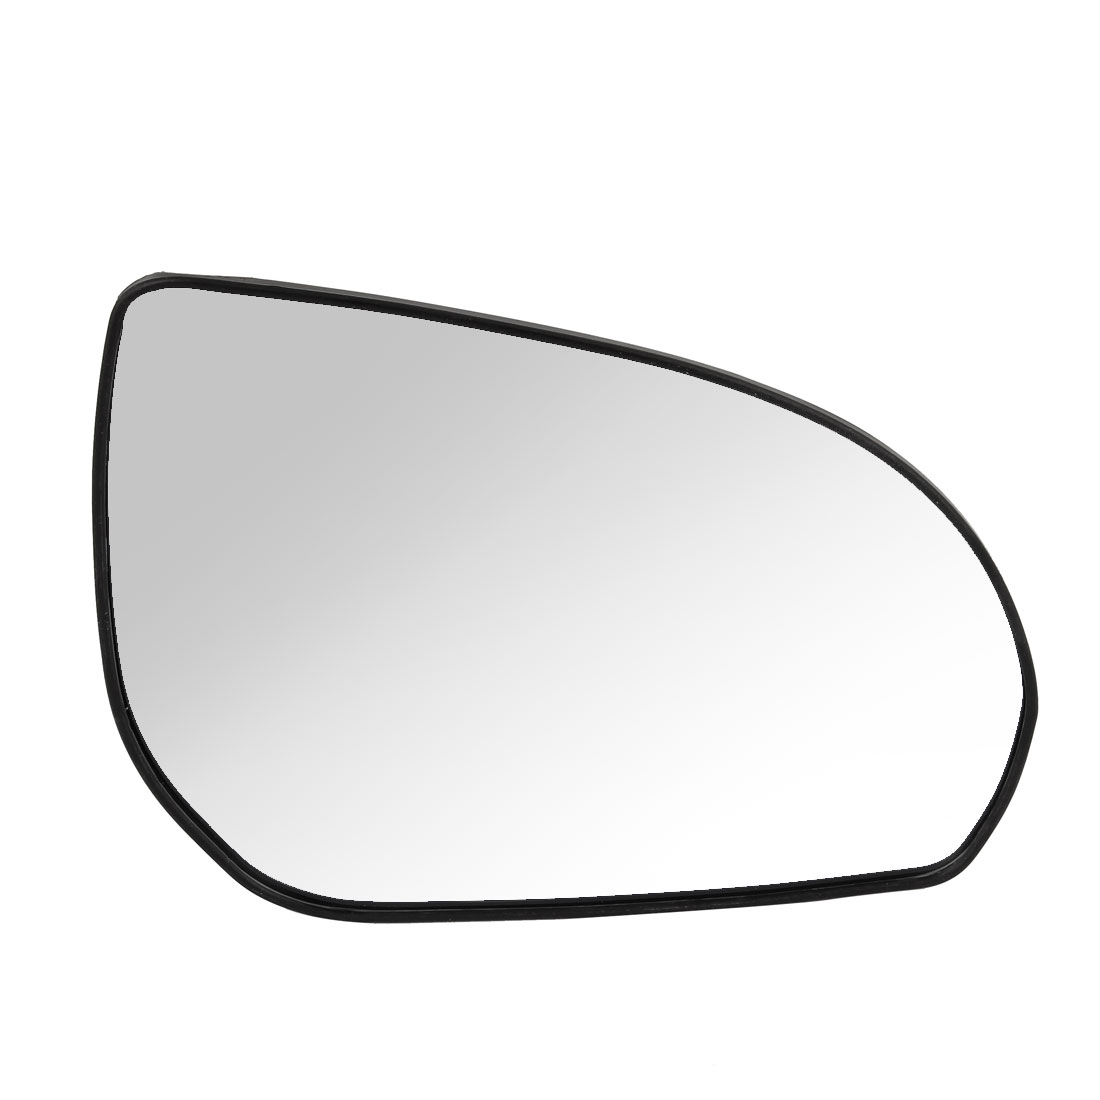 Rear View Right Side Black Plastic Frame Blind Spot Safety Mirror Checkers 87621-4X000 for Hyundai Elantra